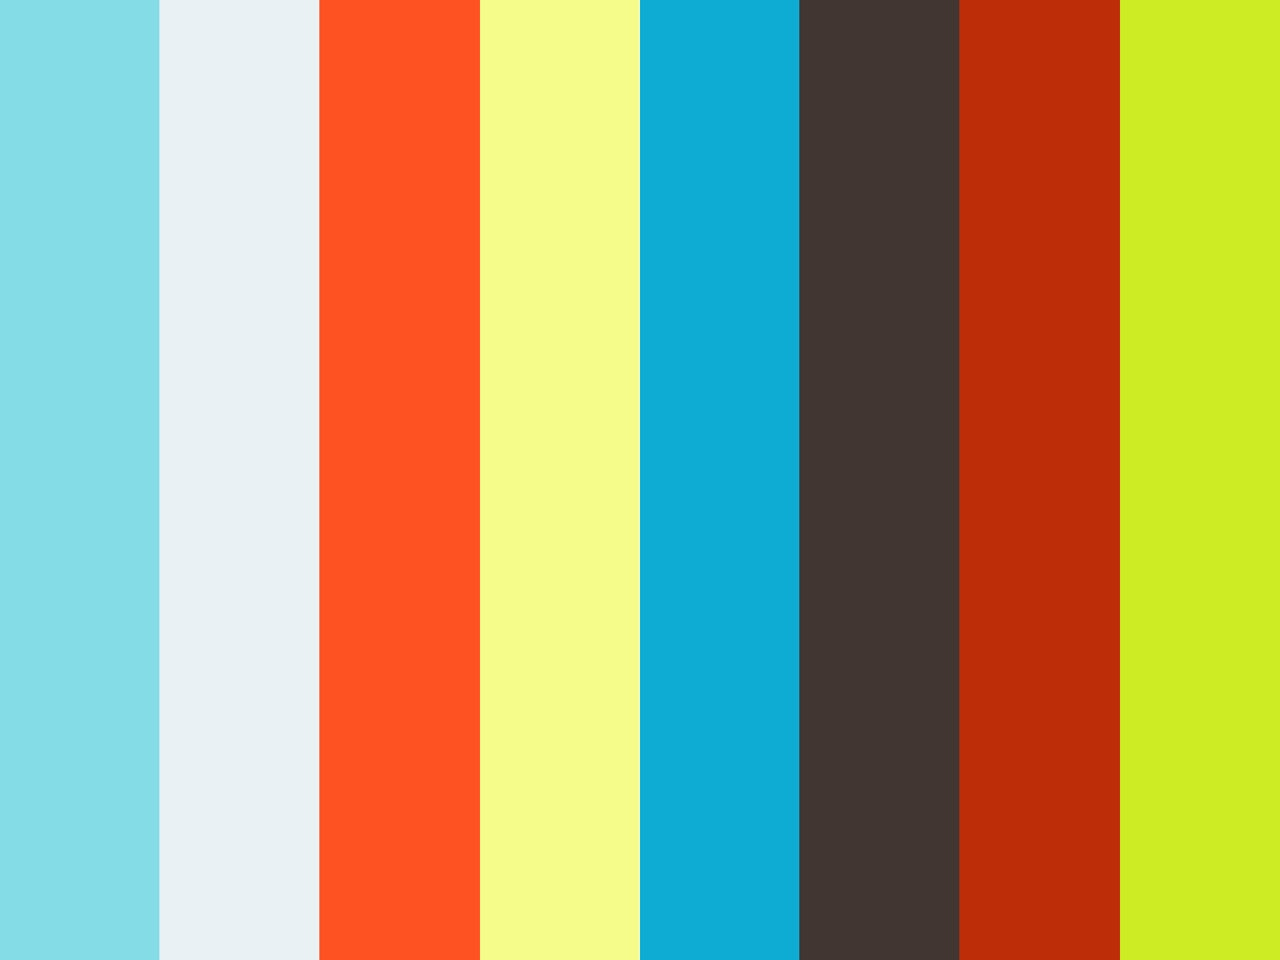 Bikes Jumping Into Water Bike Jump Into Water from